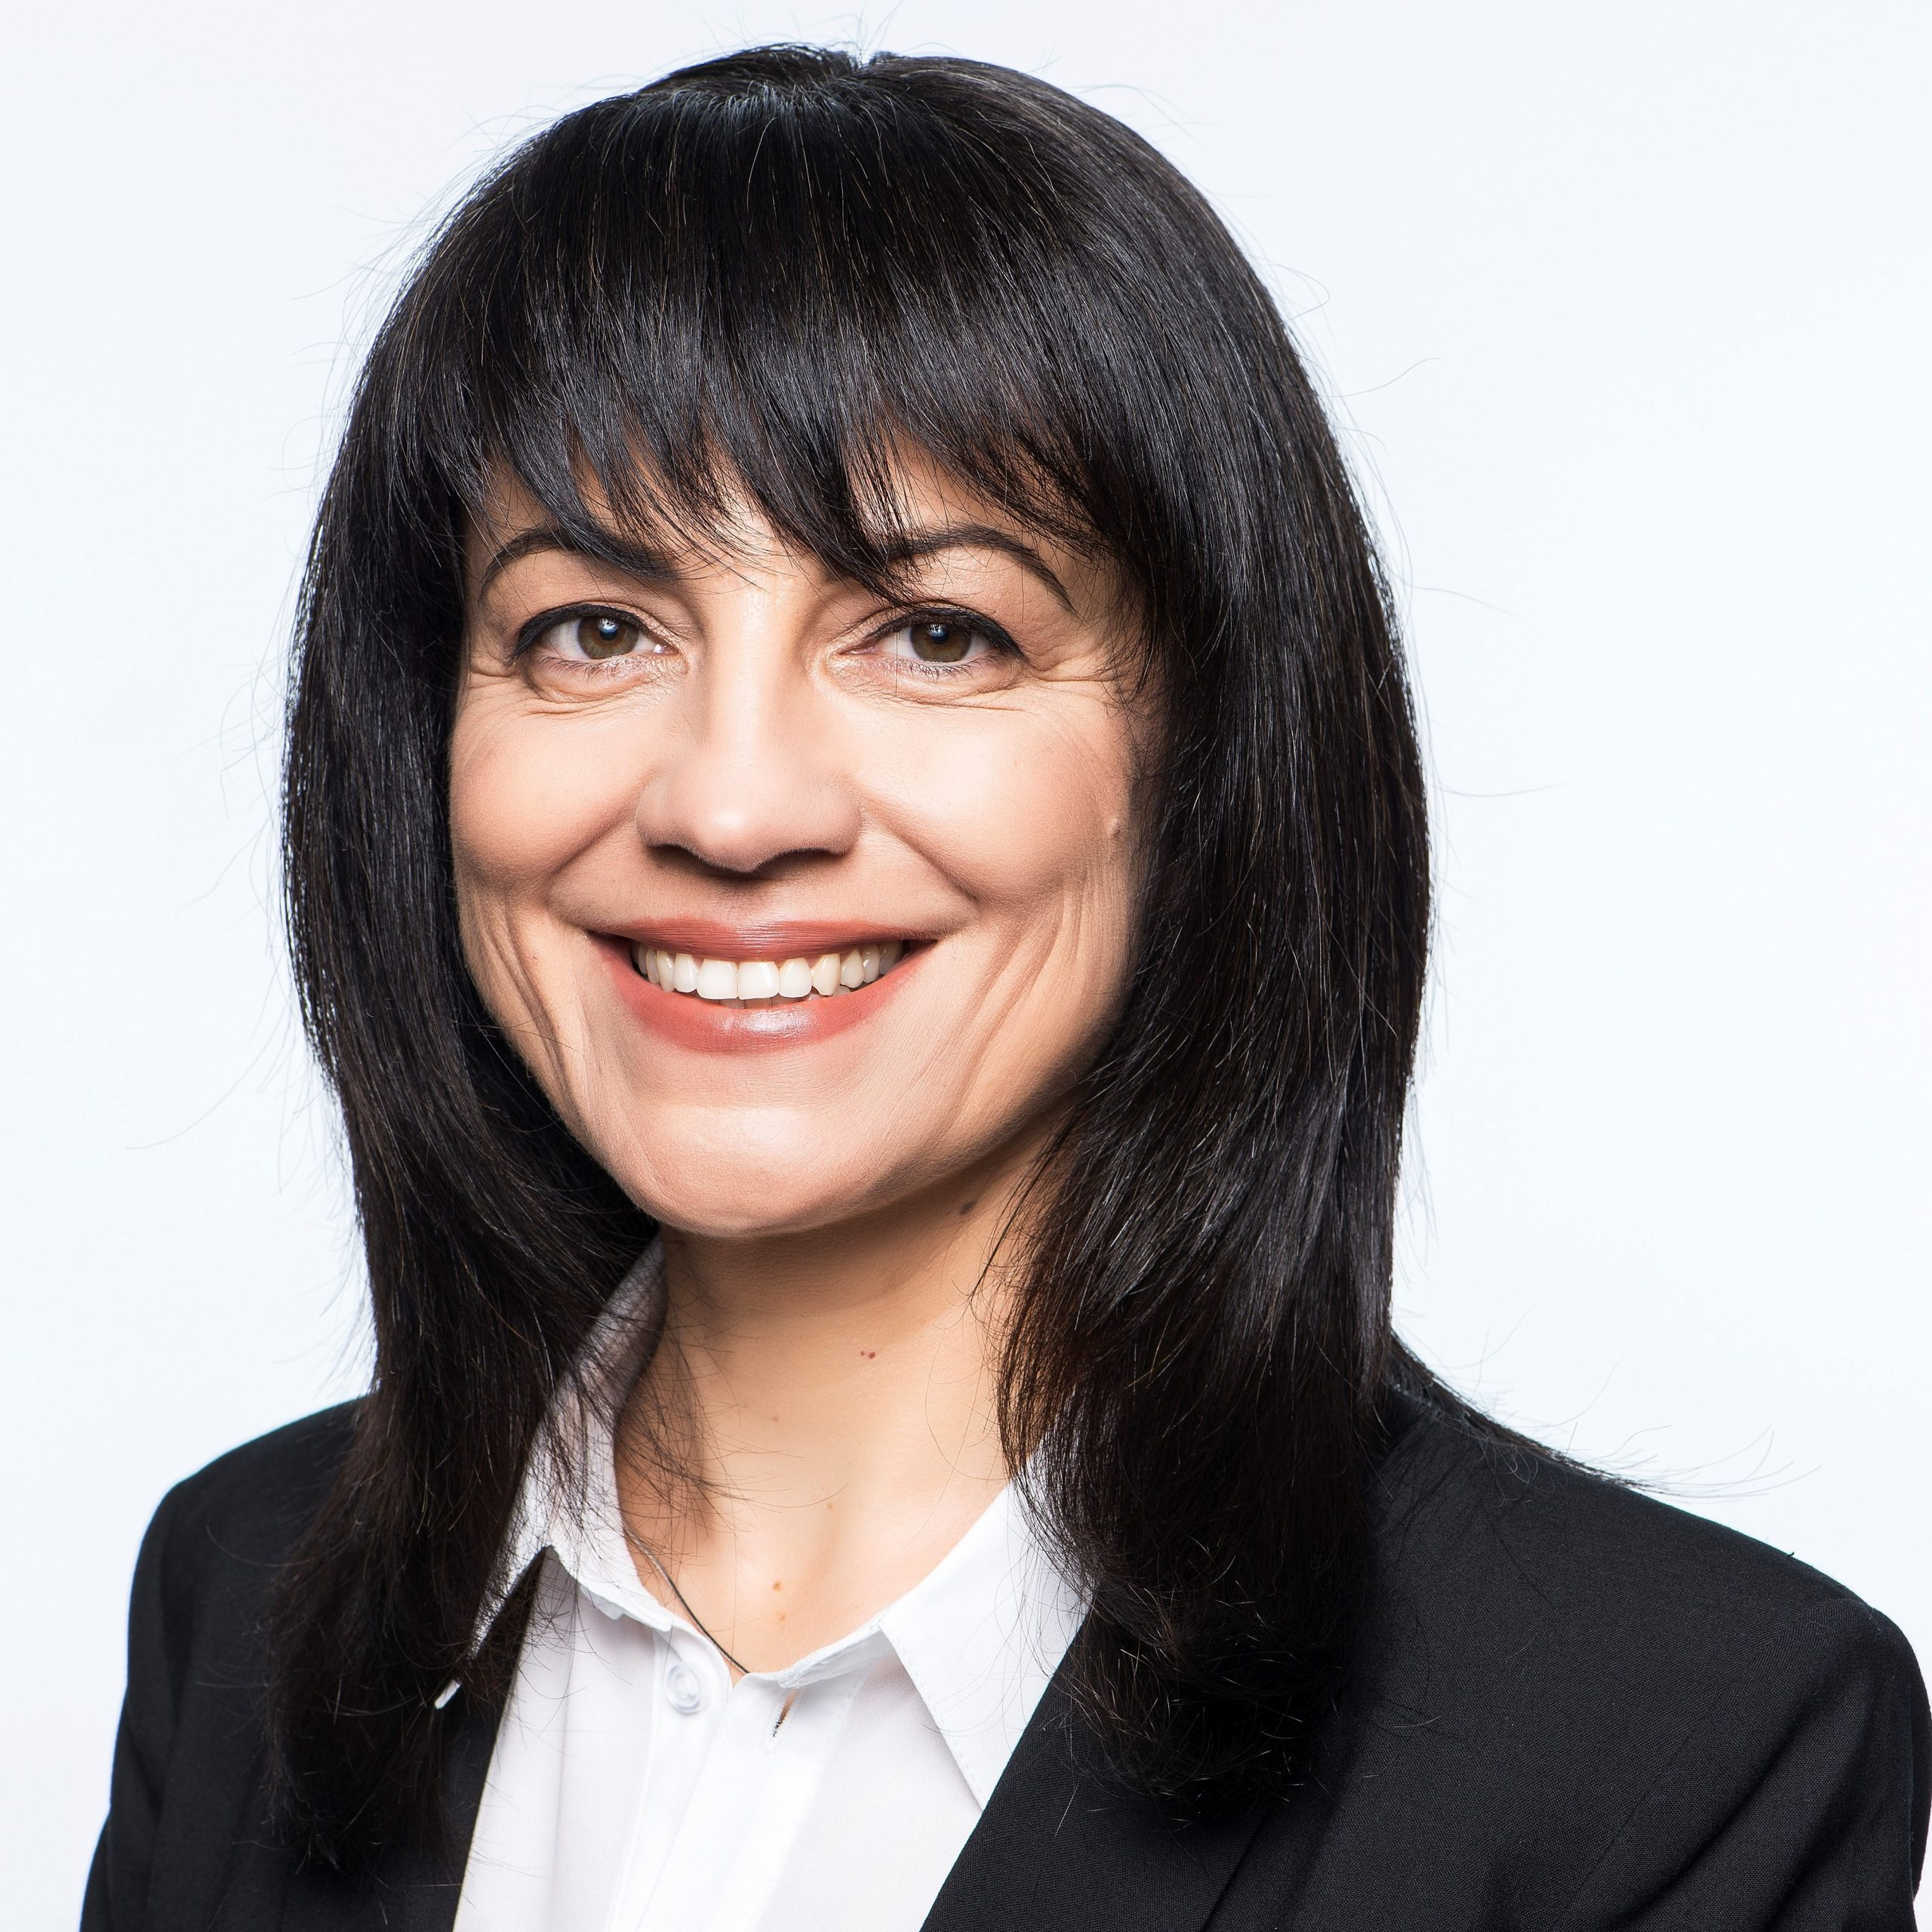 Milena Gerova is stepping up as RPA Solutions Partner